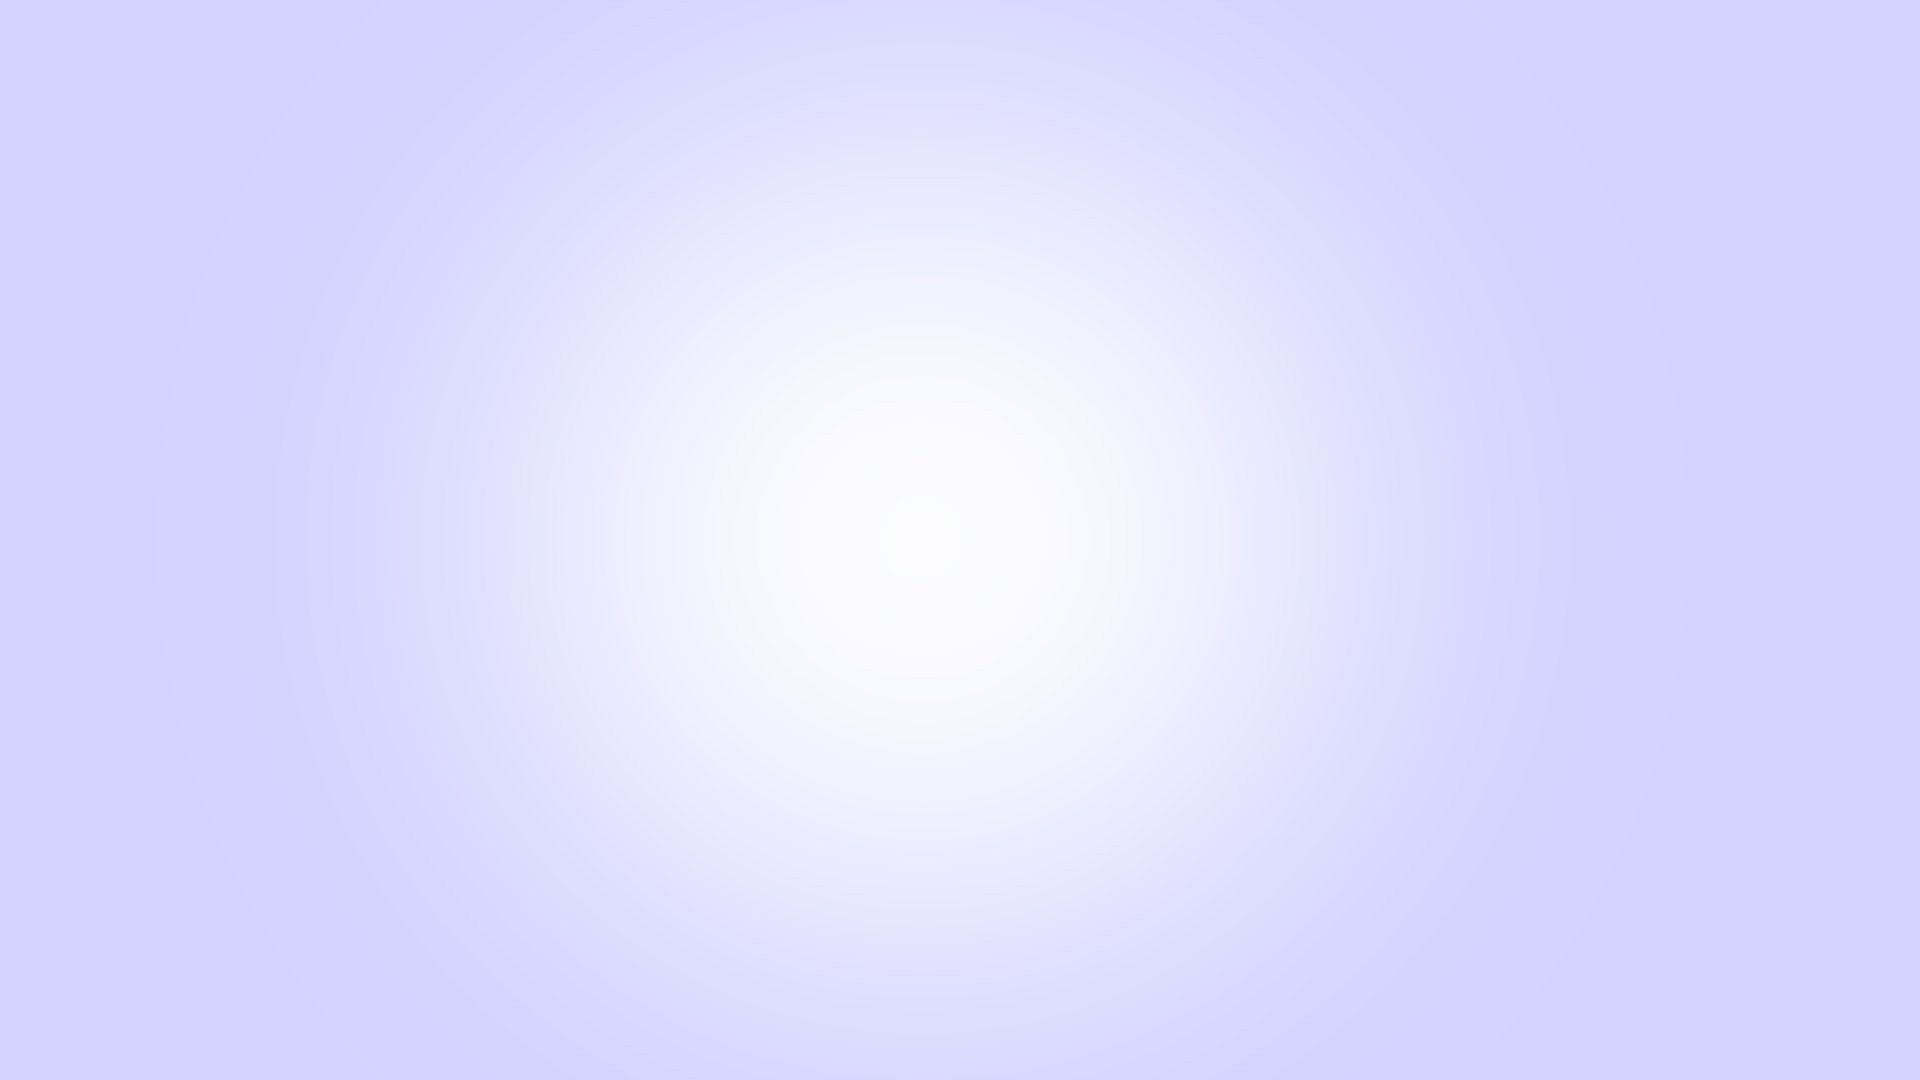 White Gradient Background 183 ① Download Free Beautiful